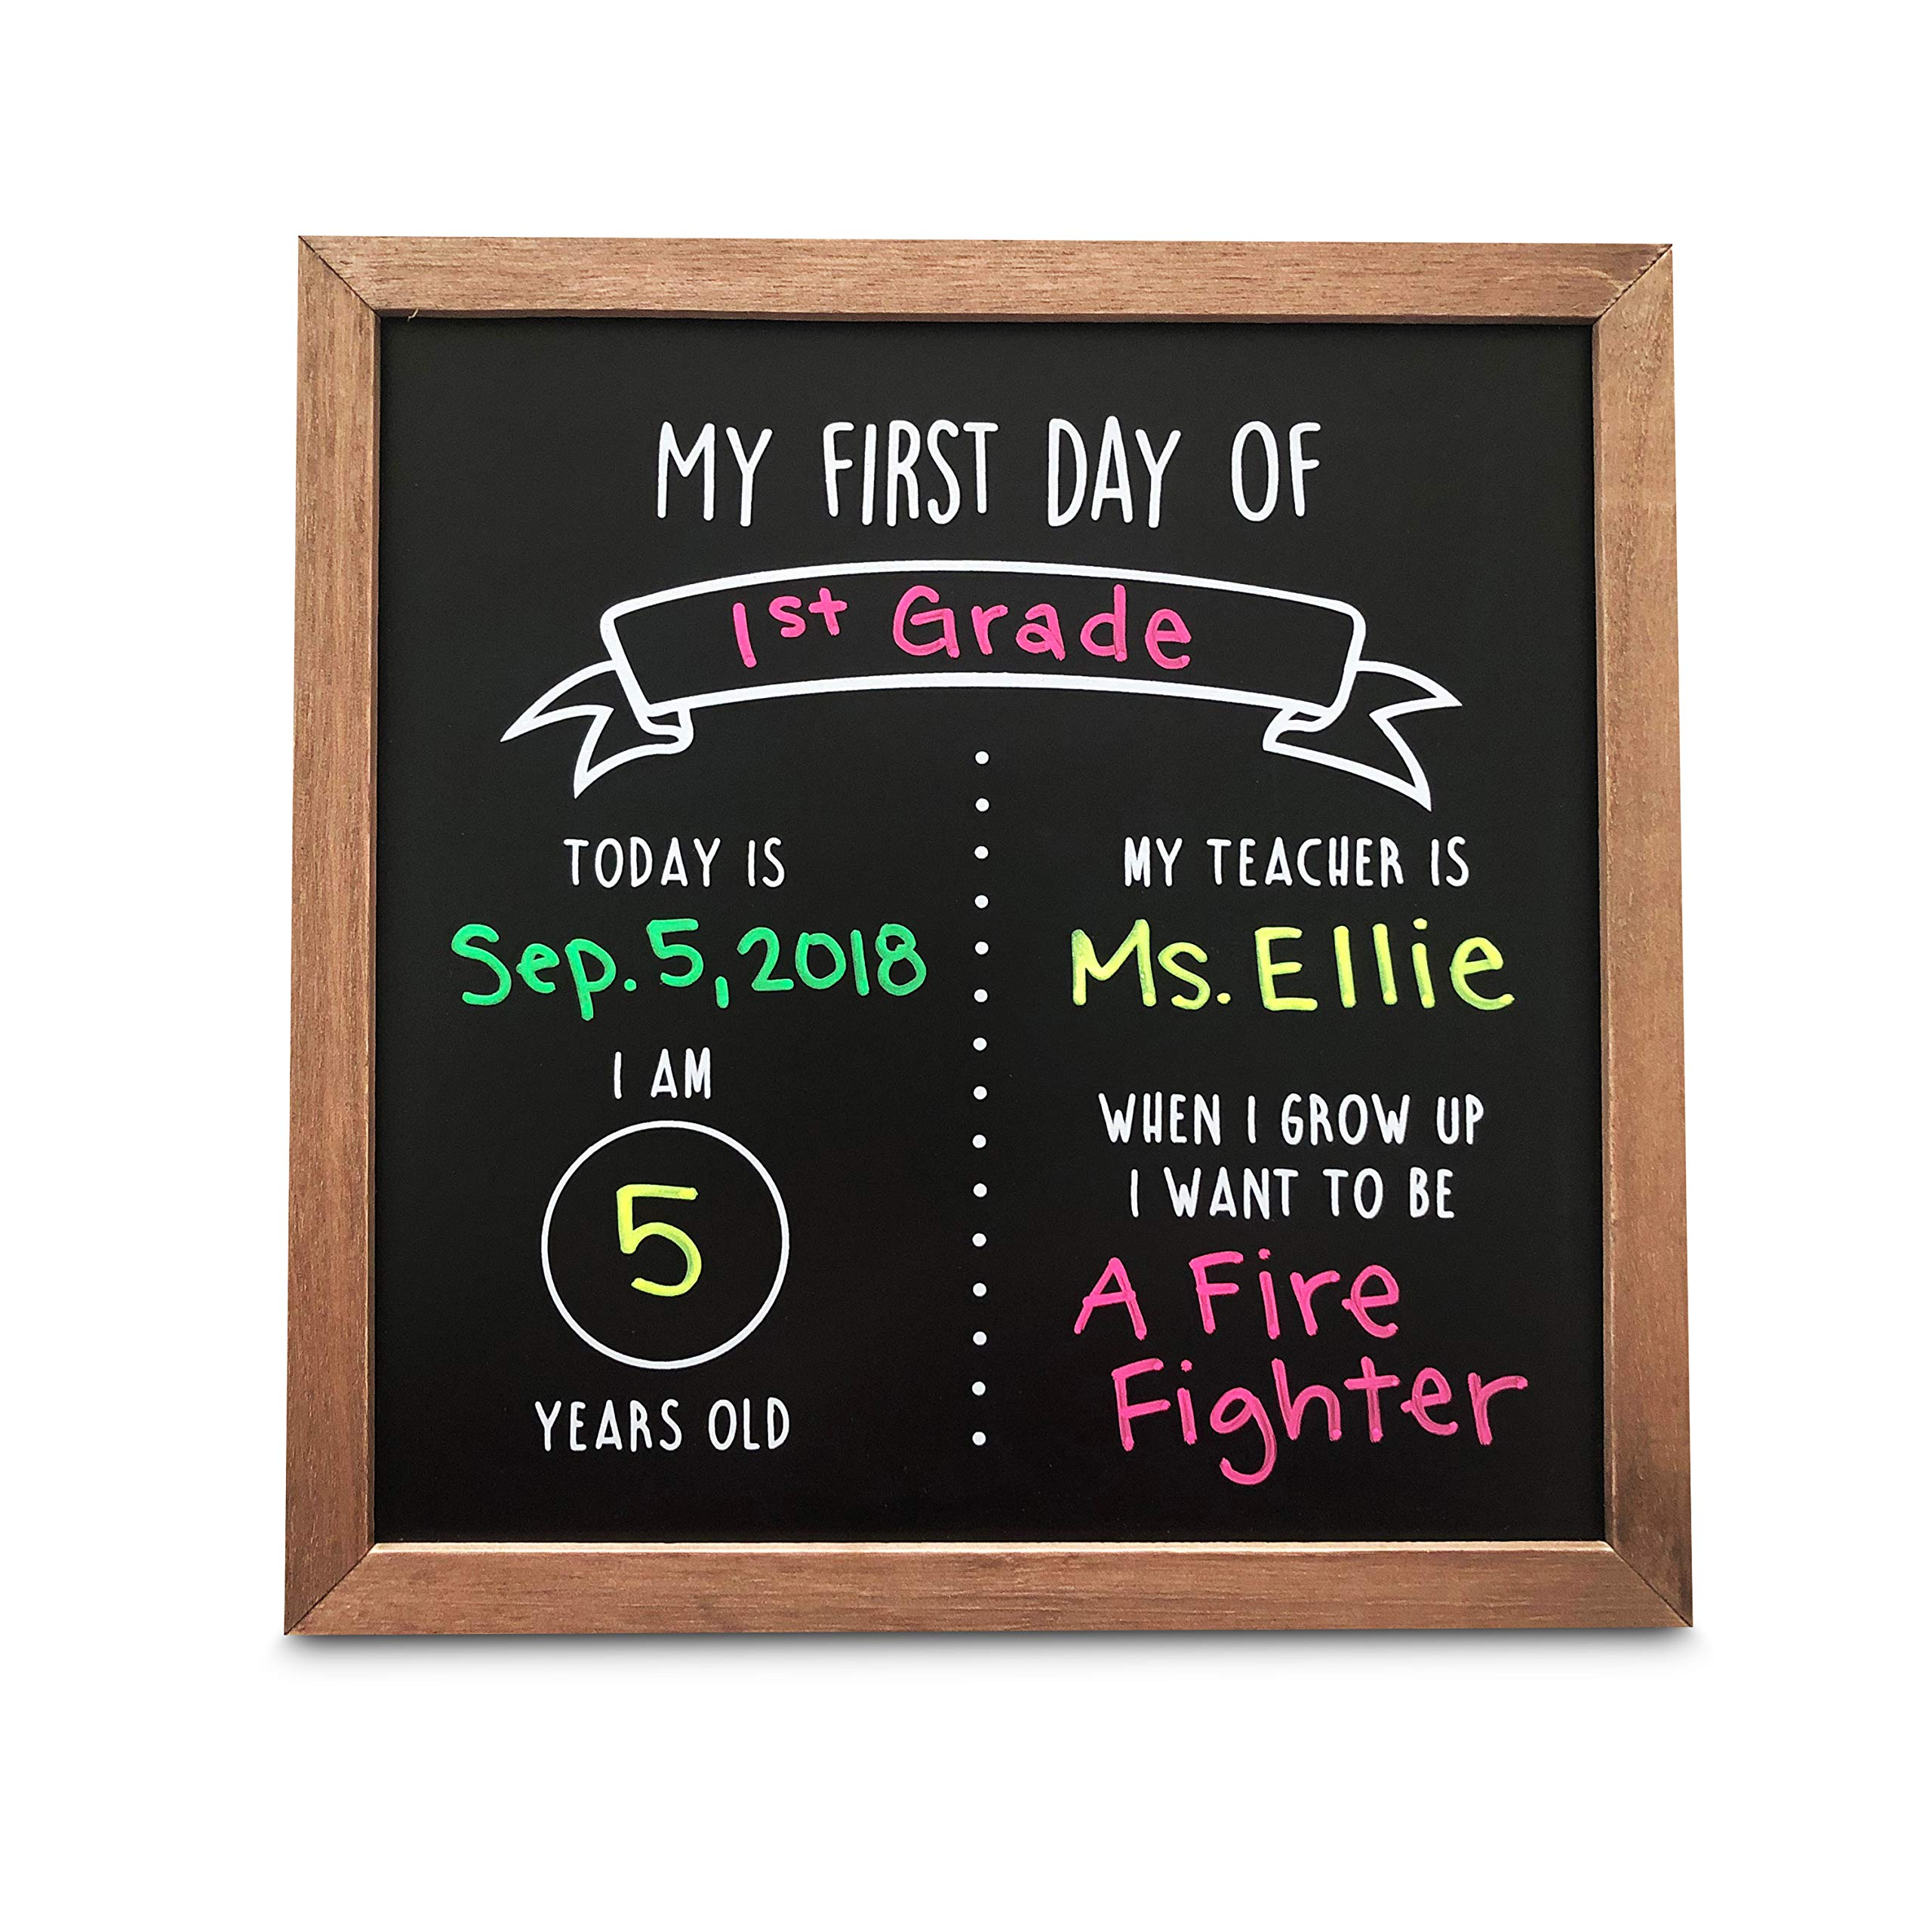 Olive & Emma First Day of School Reusable Chalkboard Sign | 12'' x 12'' Wood Framed Chalkboard | Back to School Photo Prop Board by Olive & Emma